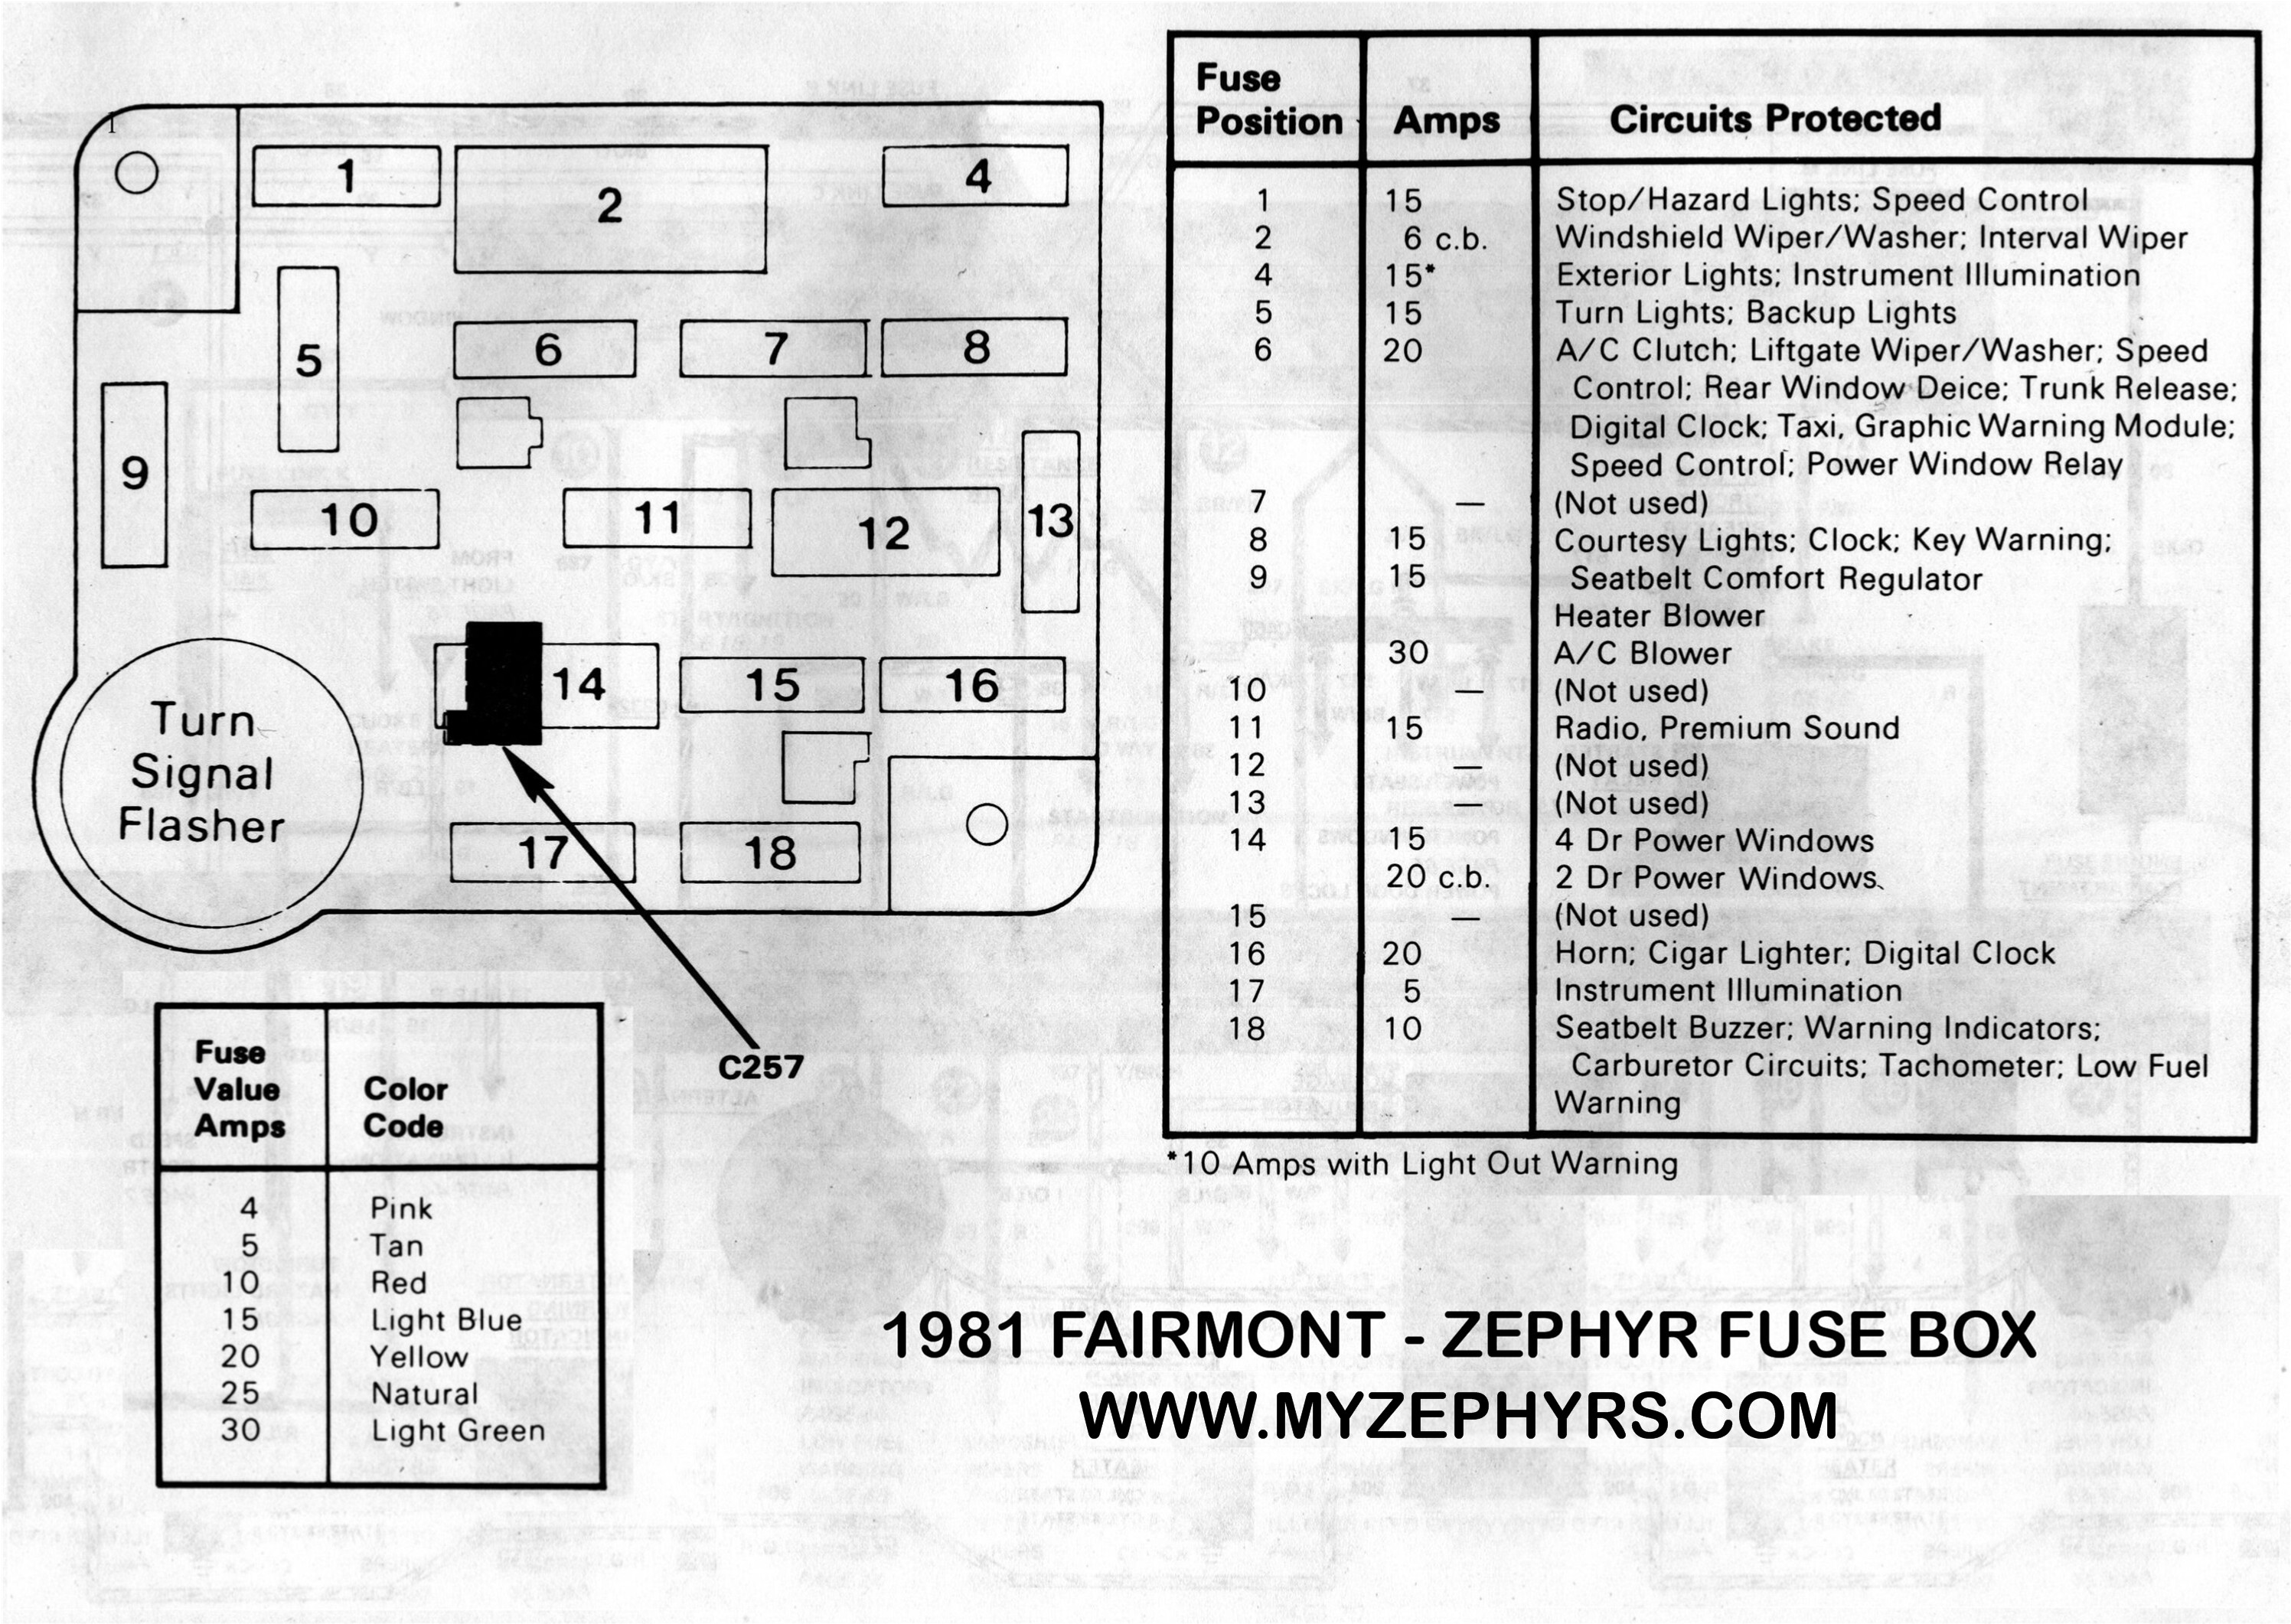 fuse box rh myzephyrs com 2002 Ford F-150 Fuse Box Diagram 2001 Ford F-150 Fuse Box Diagram